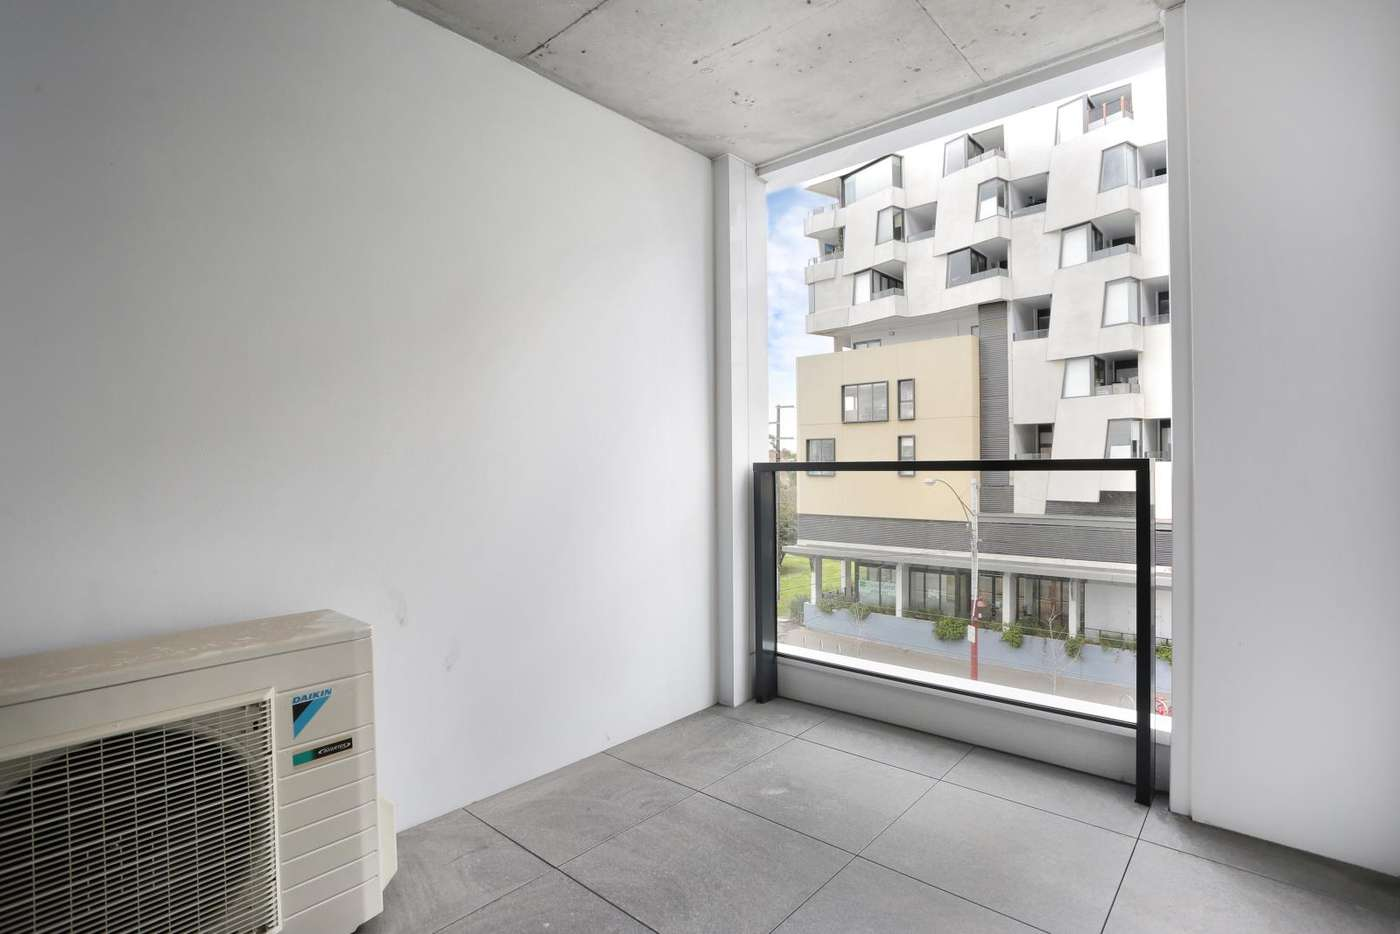 Main view of Homely house listing, 205/8 Lygon Street, Brunswick East VIC 3057